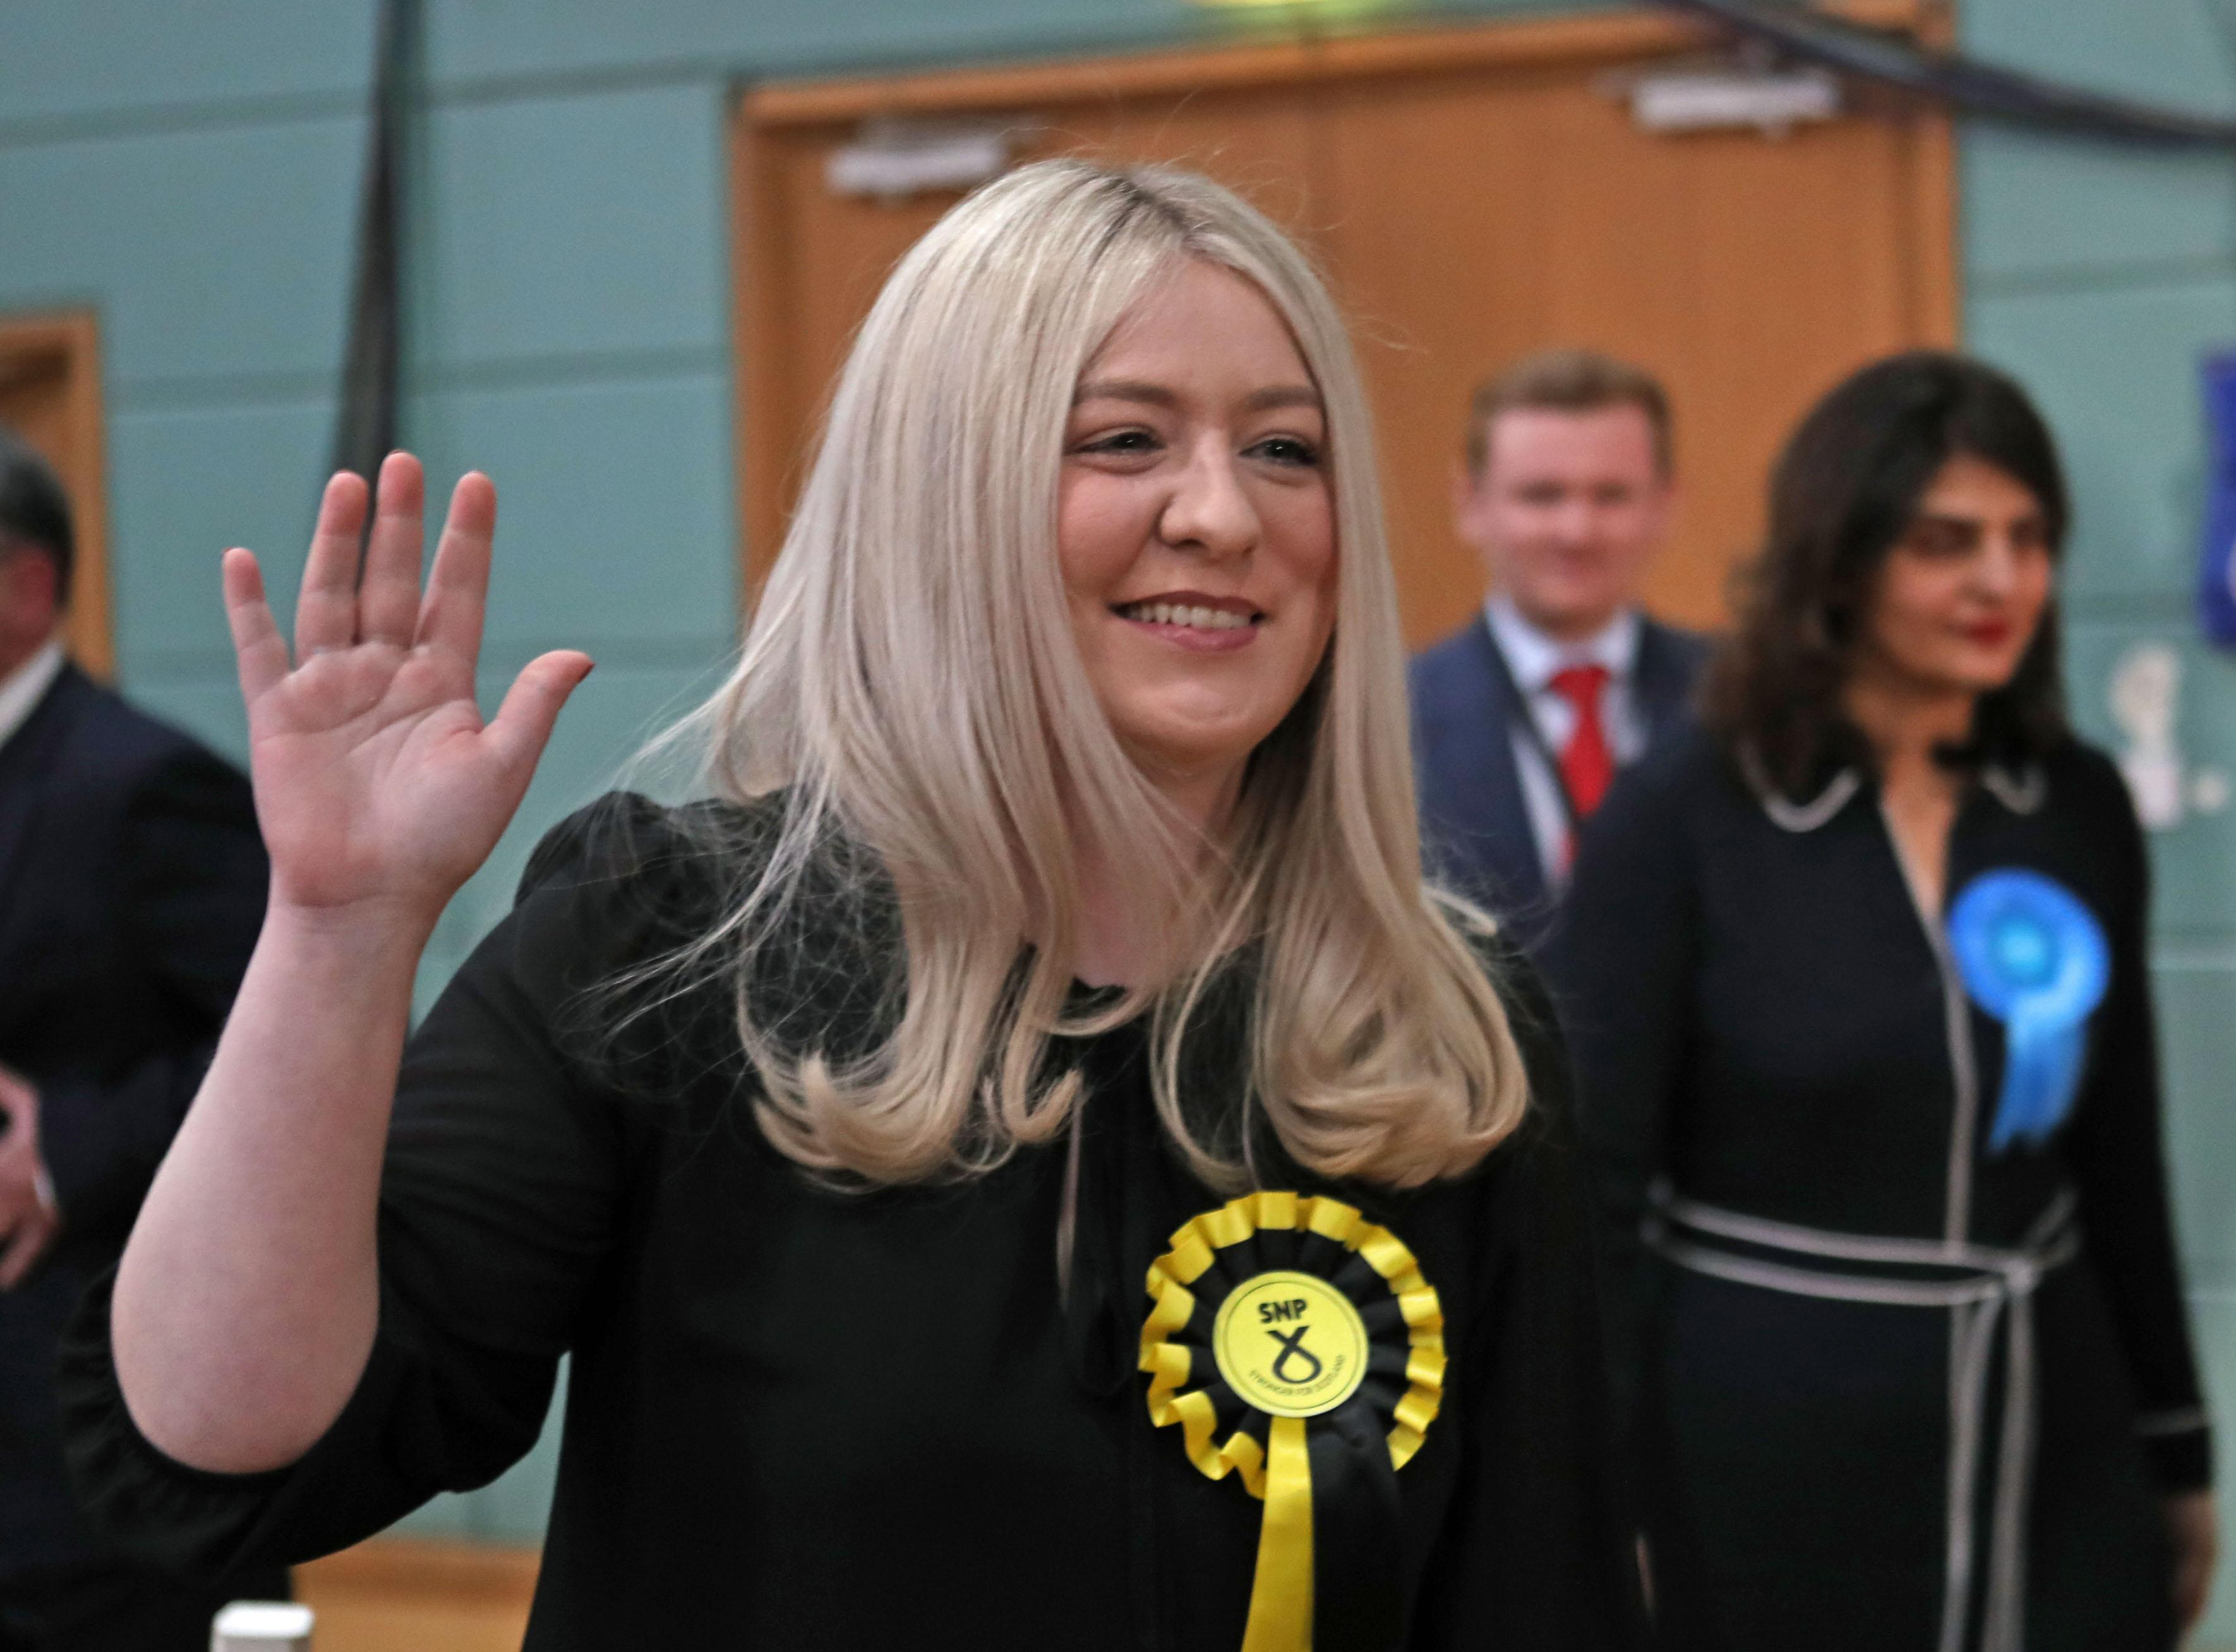 SNP candidate Amy Callaghan reacts at the Leisuredome, Bishopbriggs, after winning the East Dumbartonshire seat from Lib Dem Jo Swinson in the 2019 General Election. (Photo by Jane Barlow/PA Images via Getty Images)